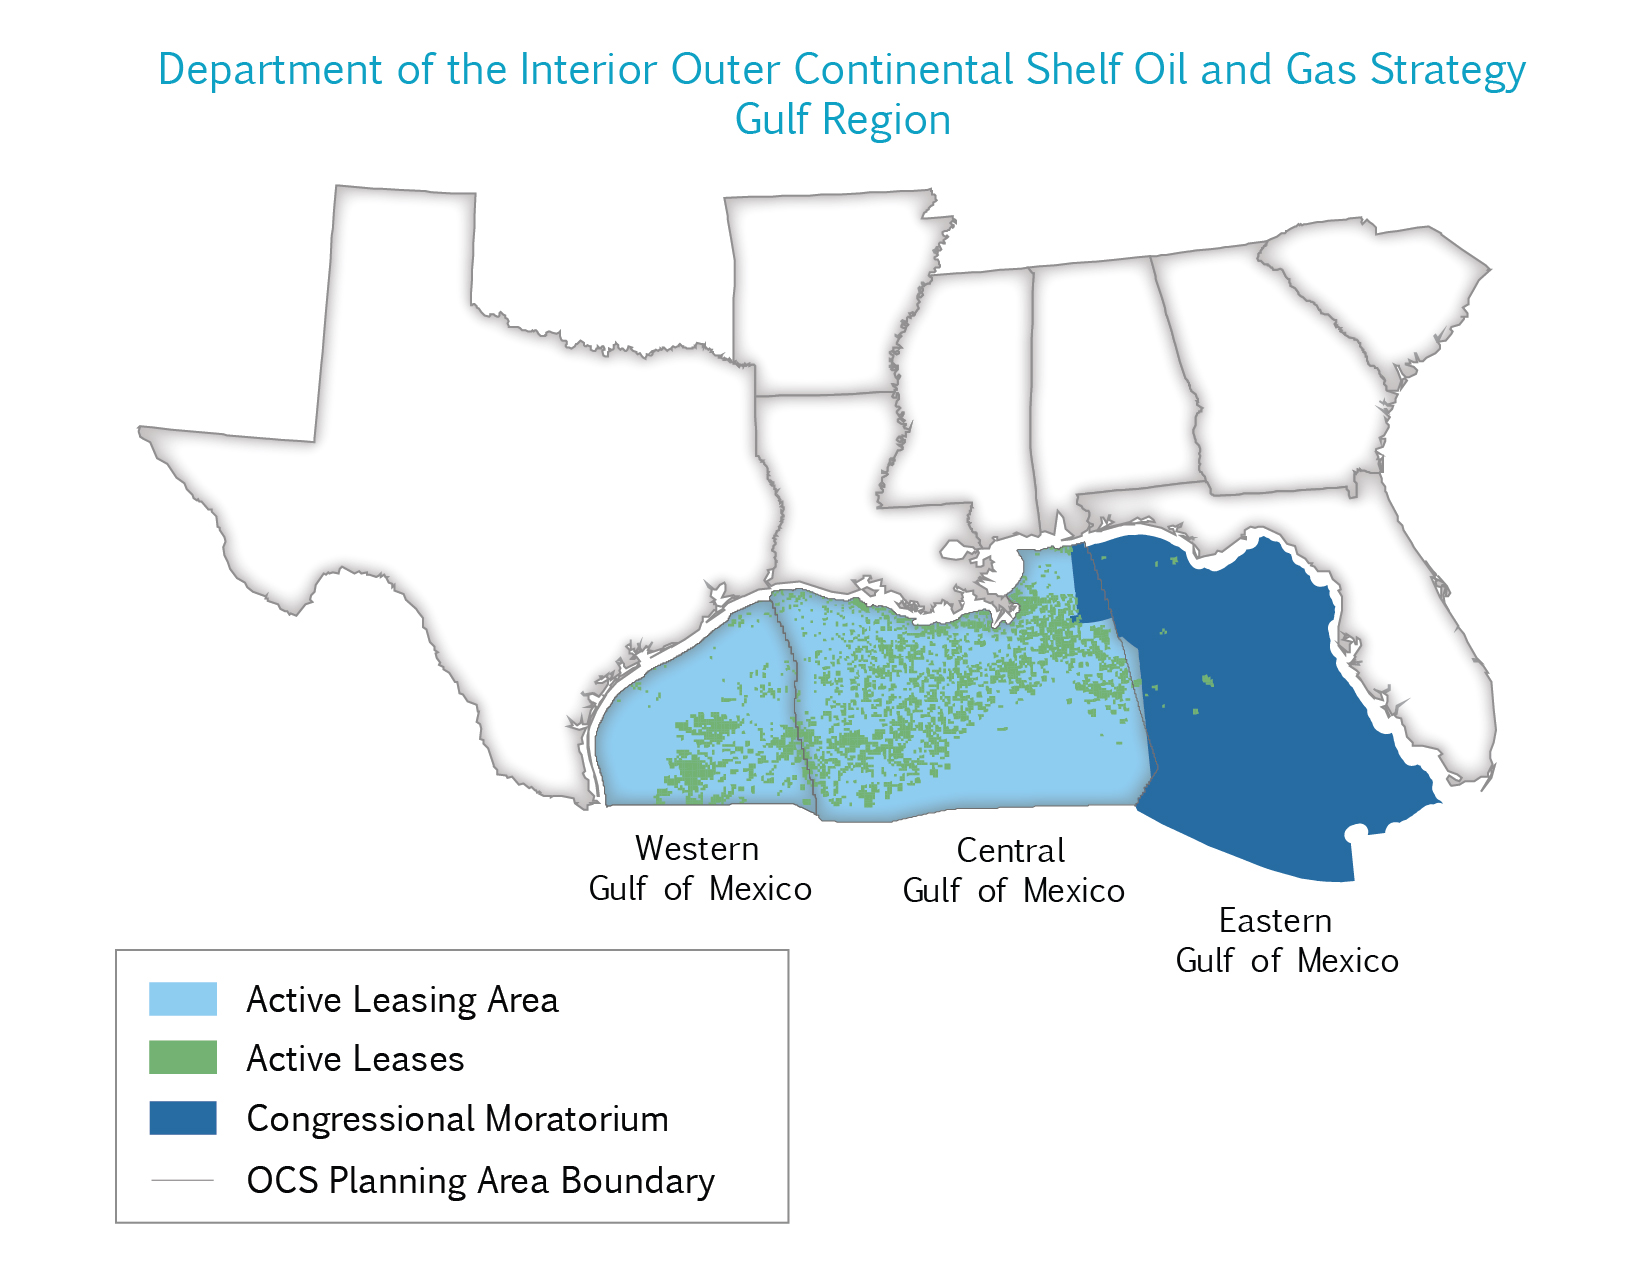 Oil Rigs In Gulf Of Mexico Map.Gulf Of Mexico Bureau Of Safety And Environmental Enforcement